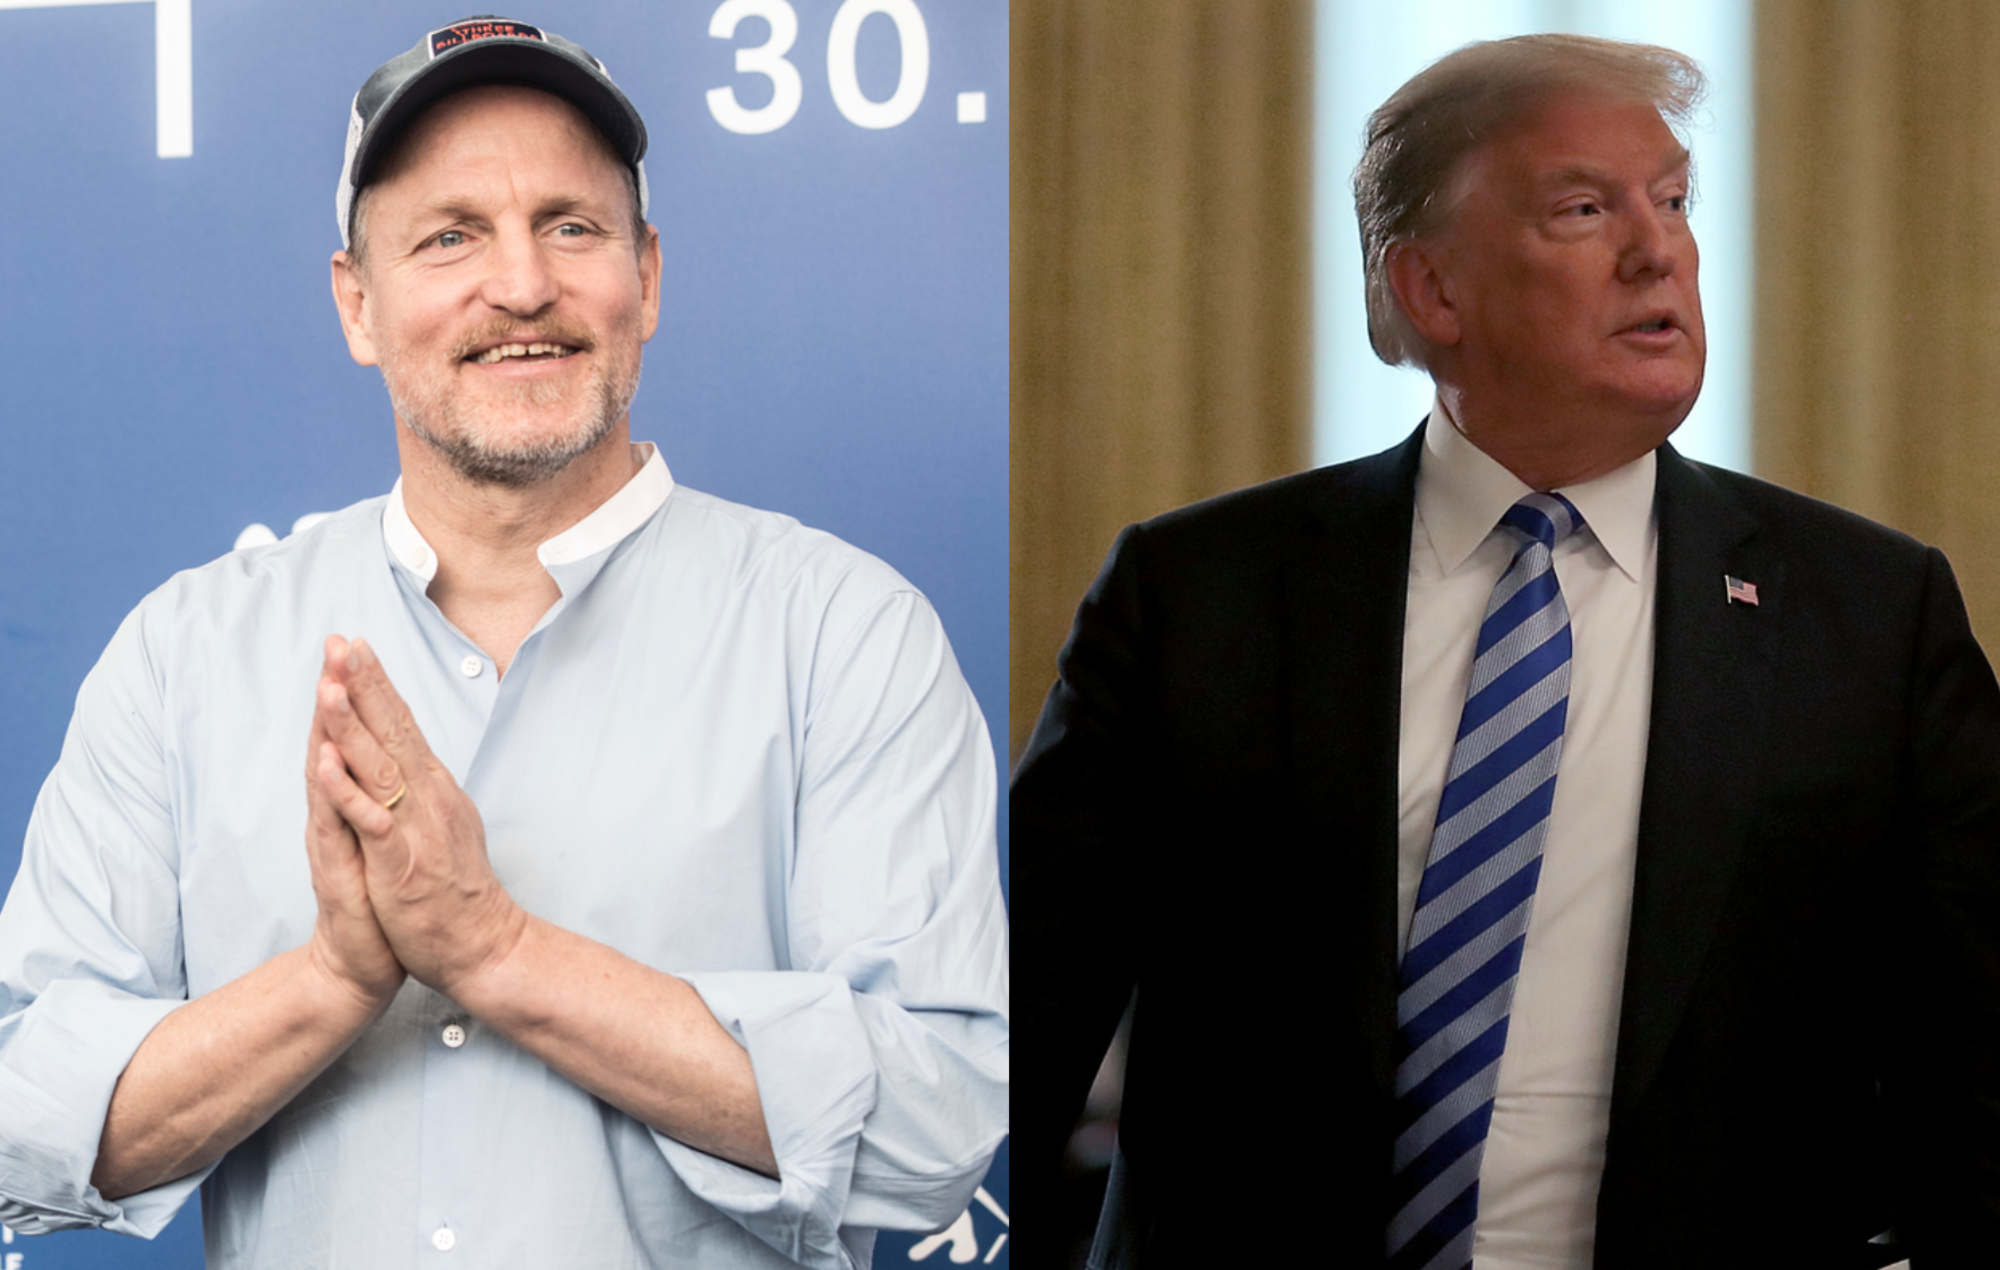 Woody Harrelson once had dinner with Donald Trump and needed to smoke weed just to get through it